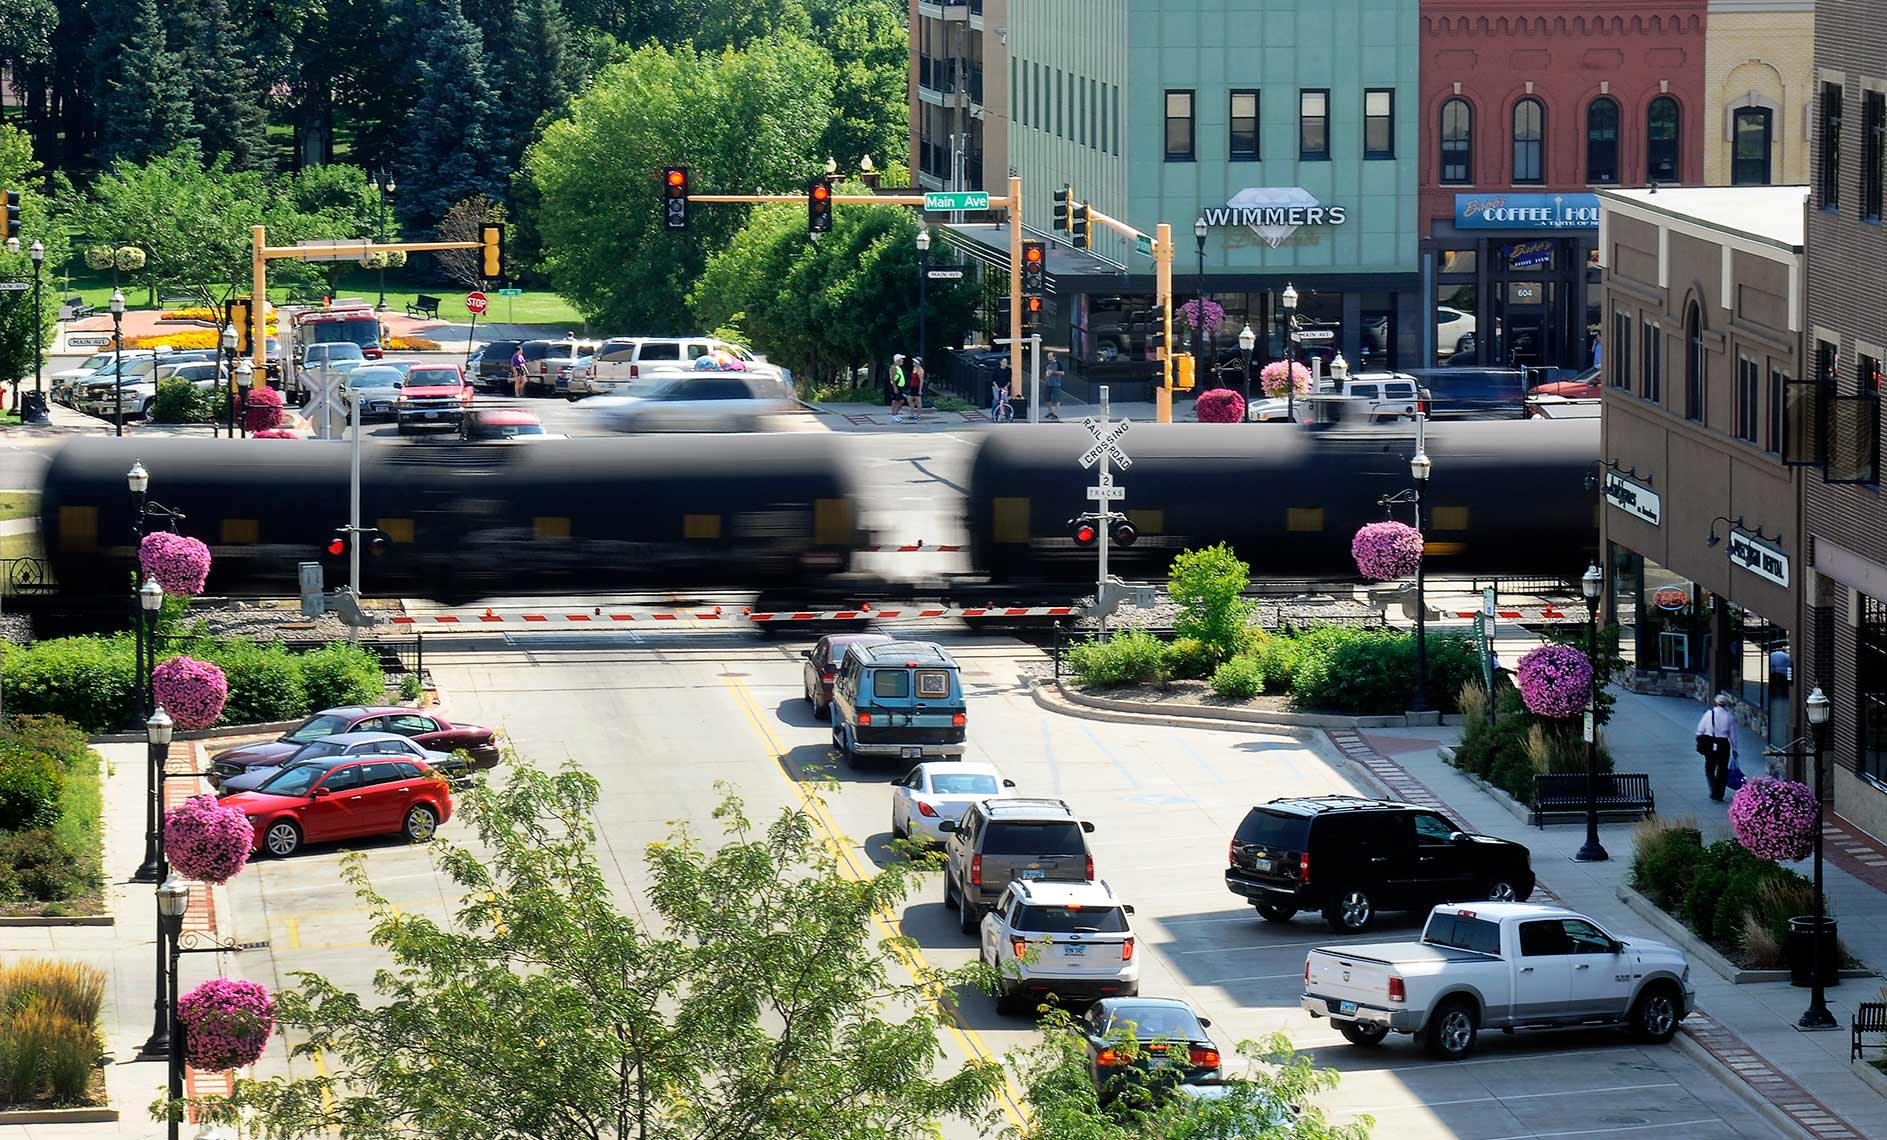 Photo of oil train in downtown Fargo, North Dakota by editorial photographer Dan Koeck.